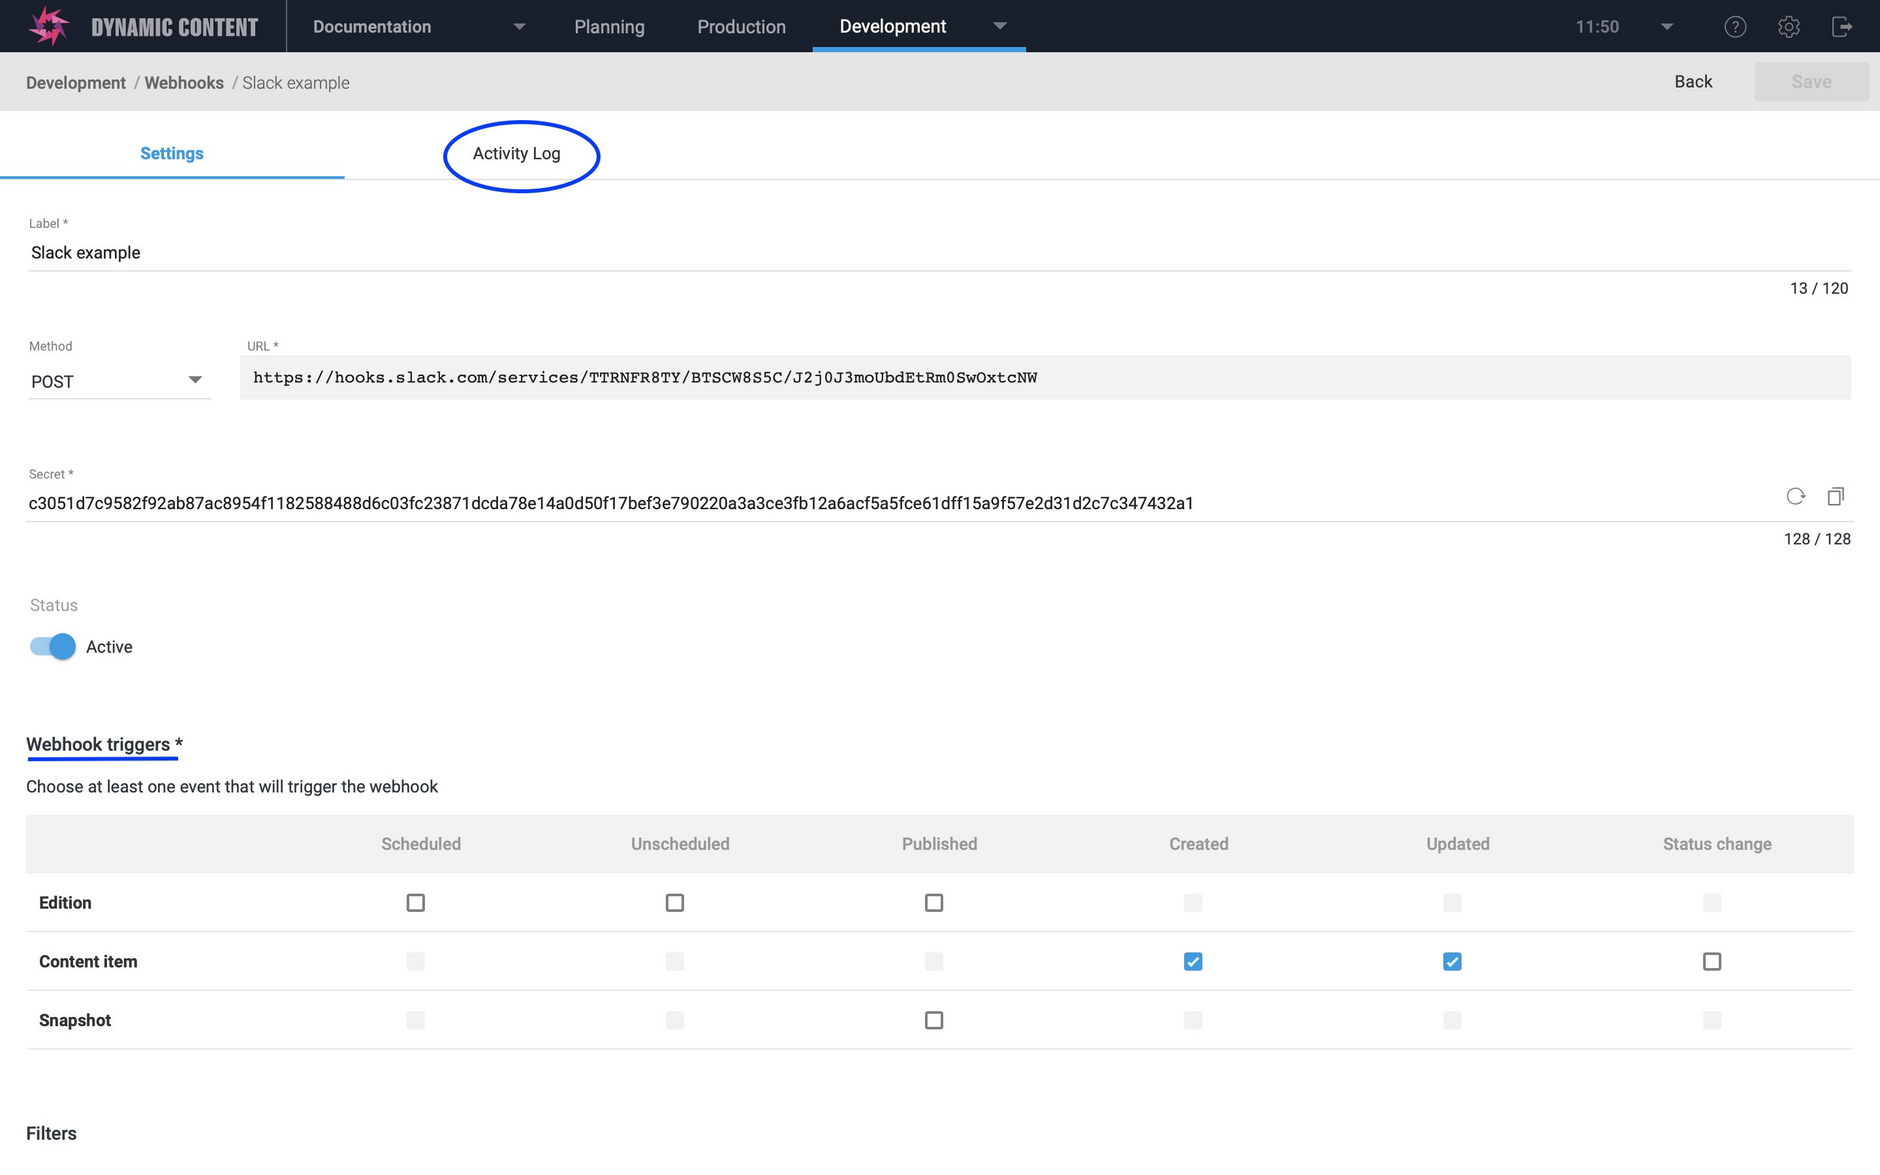 The webhook window now includes a separate activity log tab and a reorganized triggers section